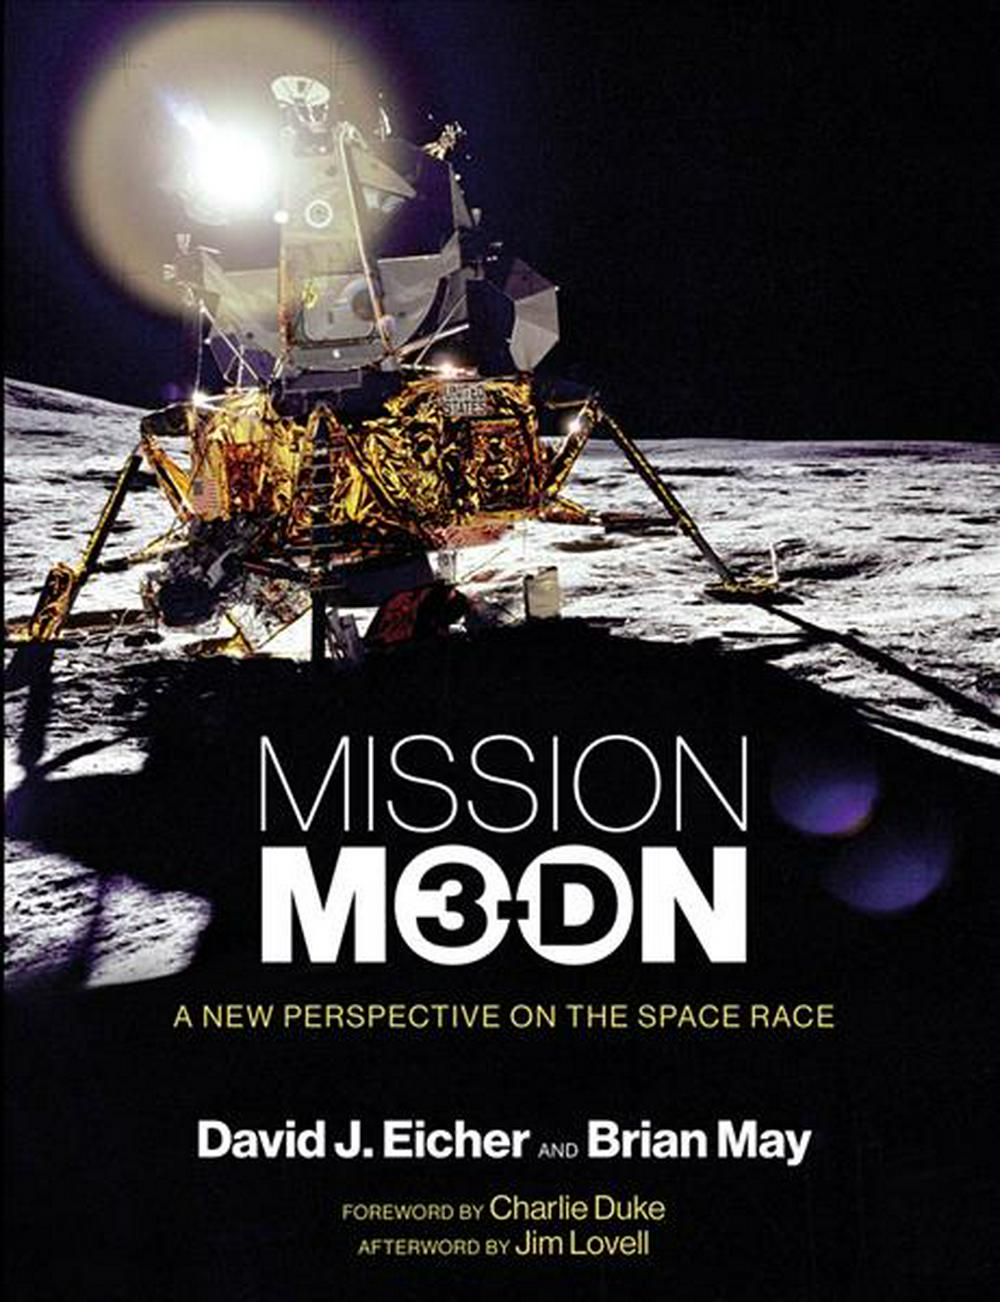 Mission Moon 3-D: A New Perspective on the Space Race (Mit Press) by David Eicher, ISBN: 9780262039451